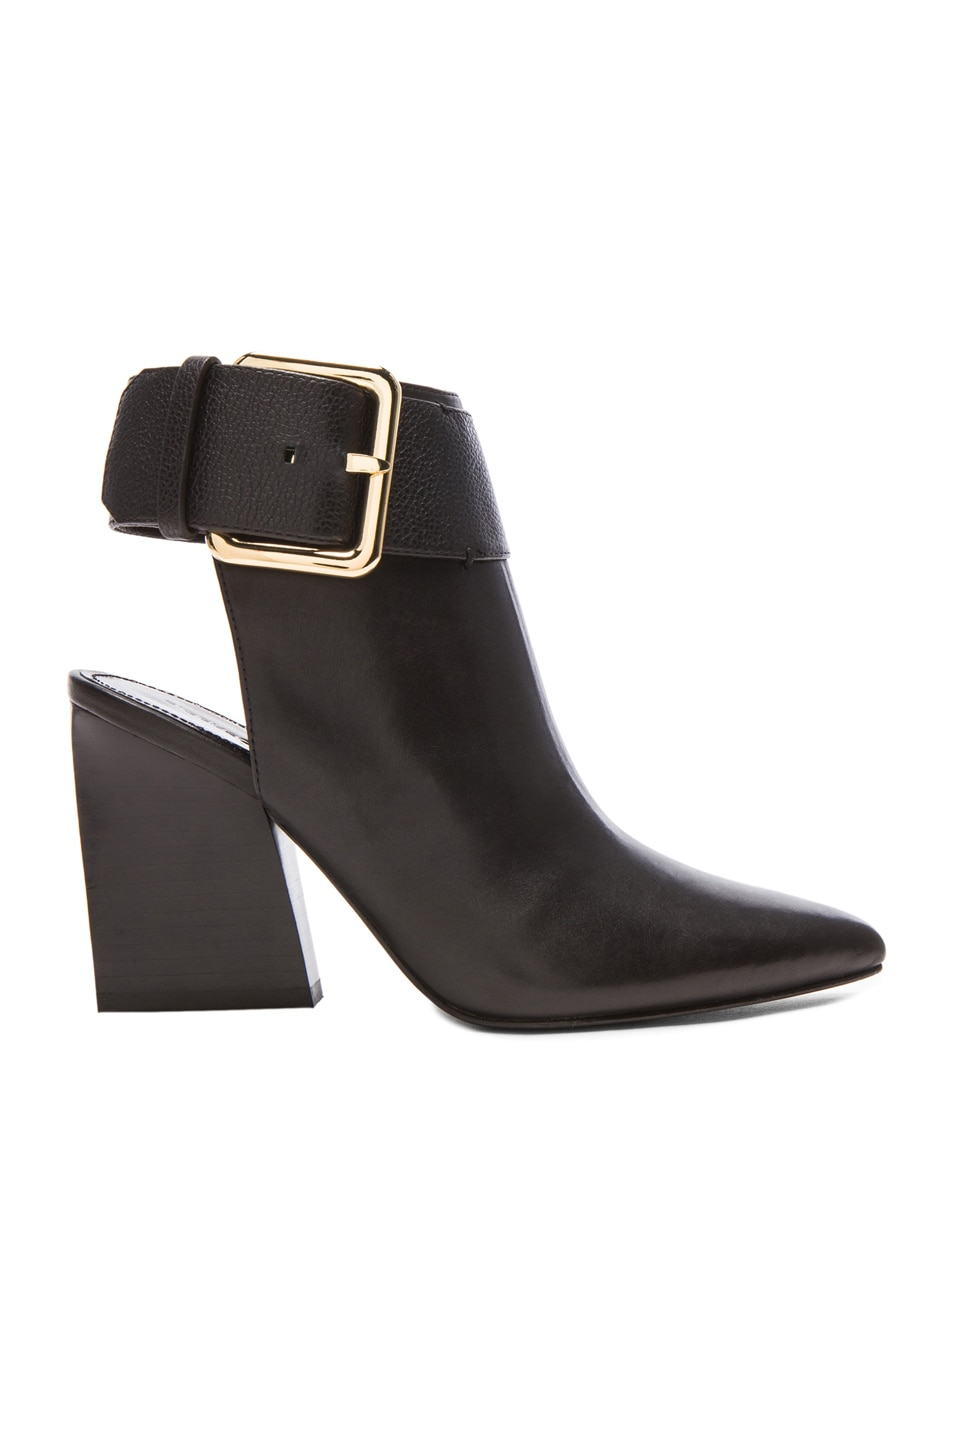 Image 1 of Sigerson Morrison Ice Open Heel Leather Buckle Booties in Black